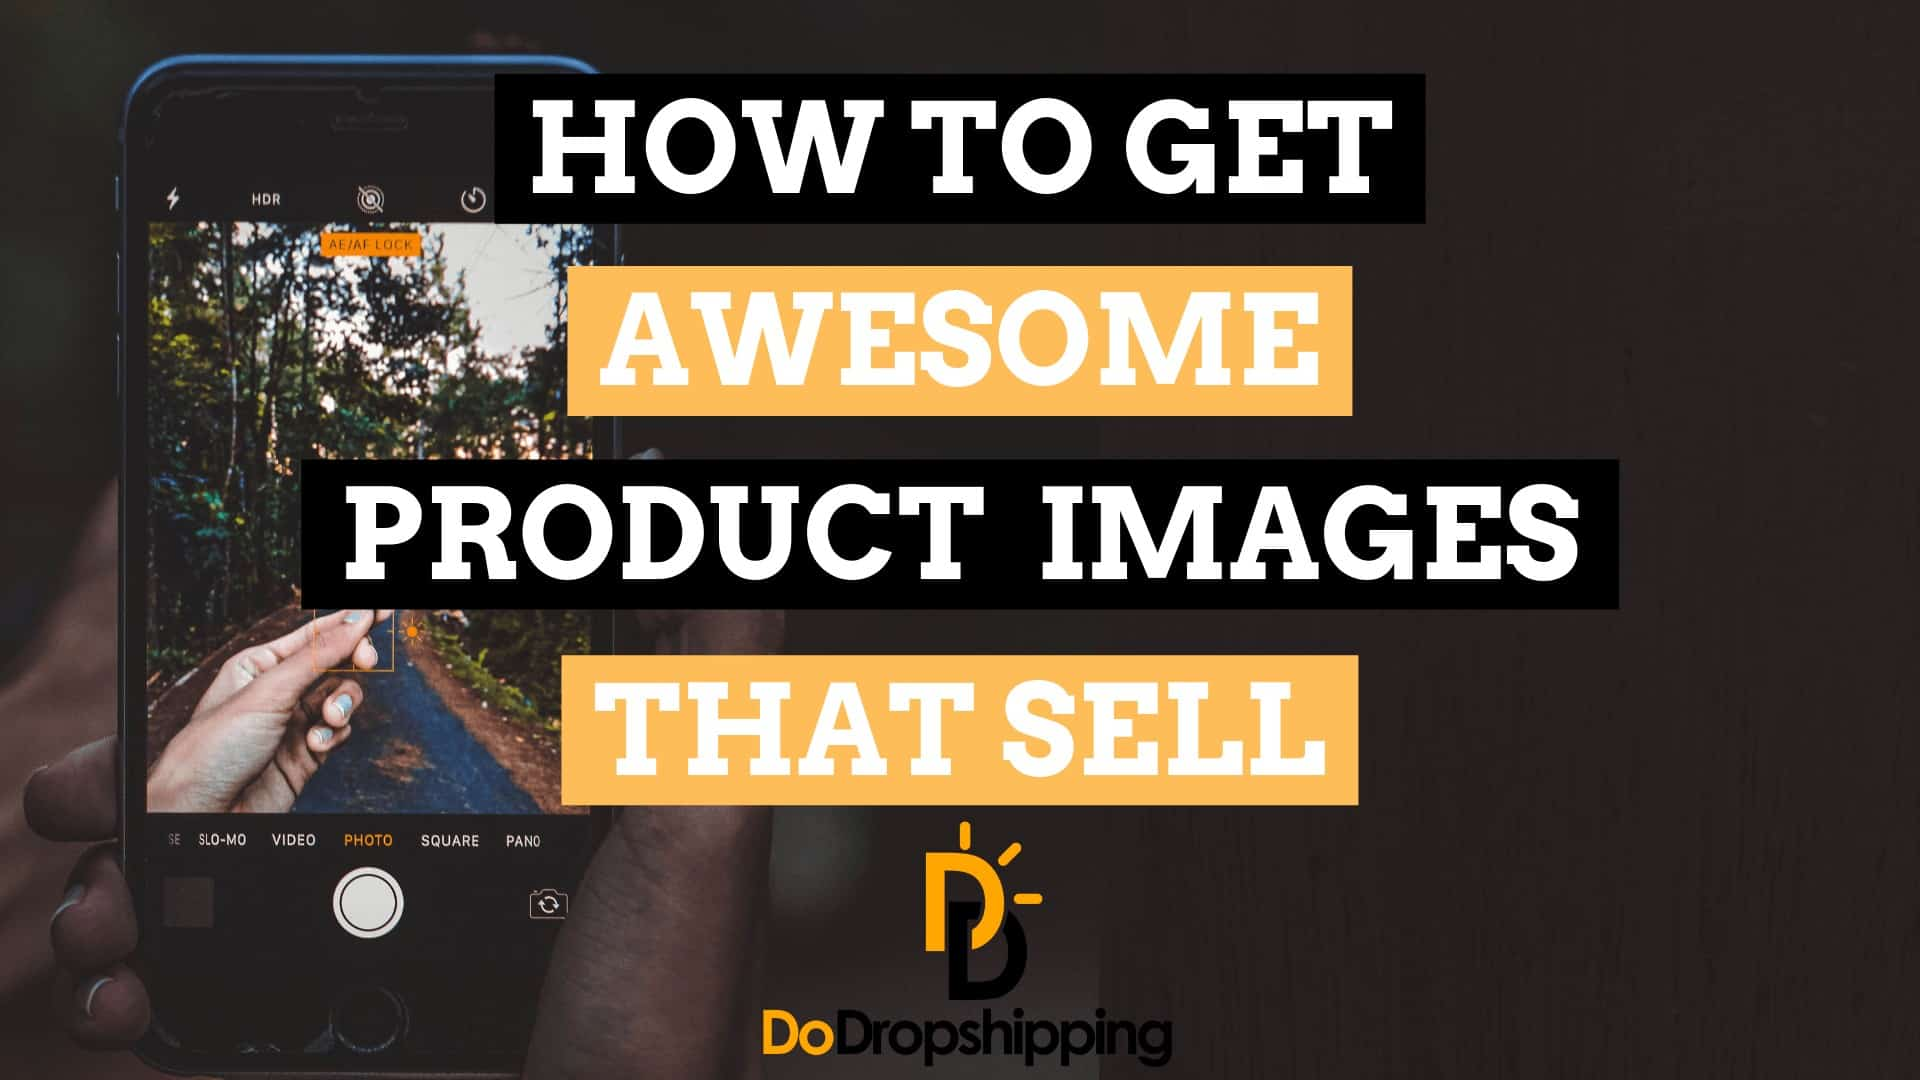 Product Images For Dropshipping! Get product images that sell